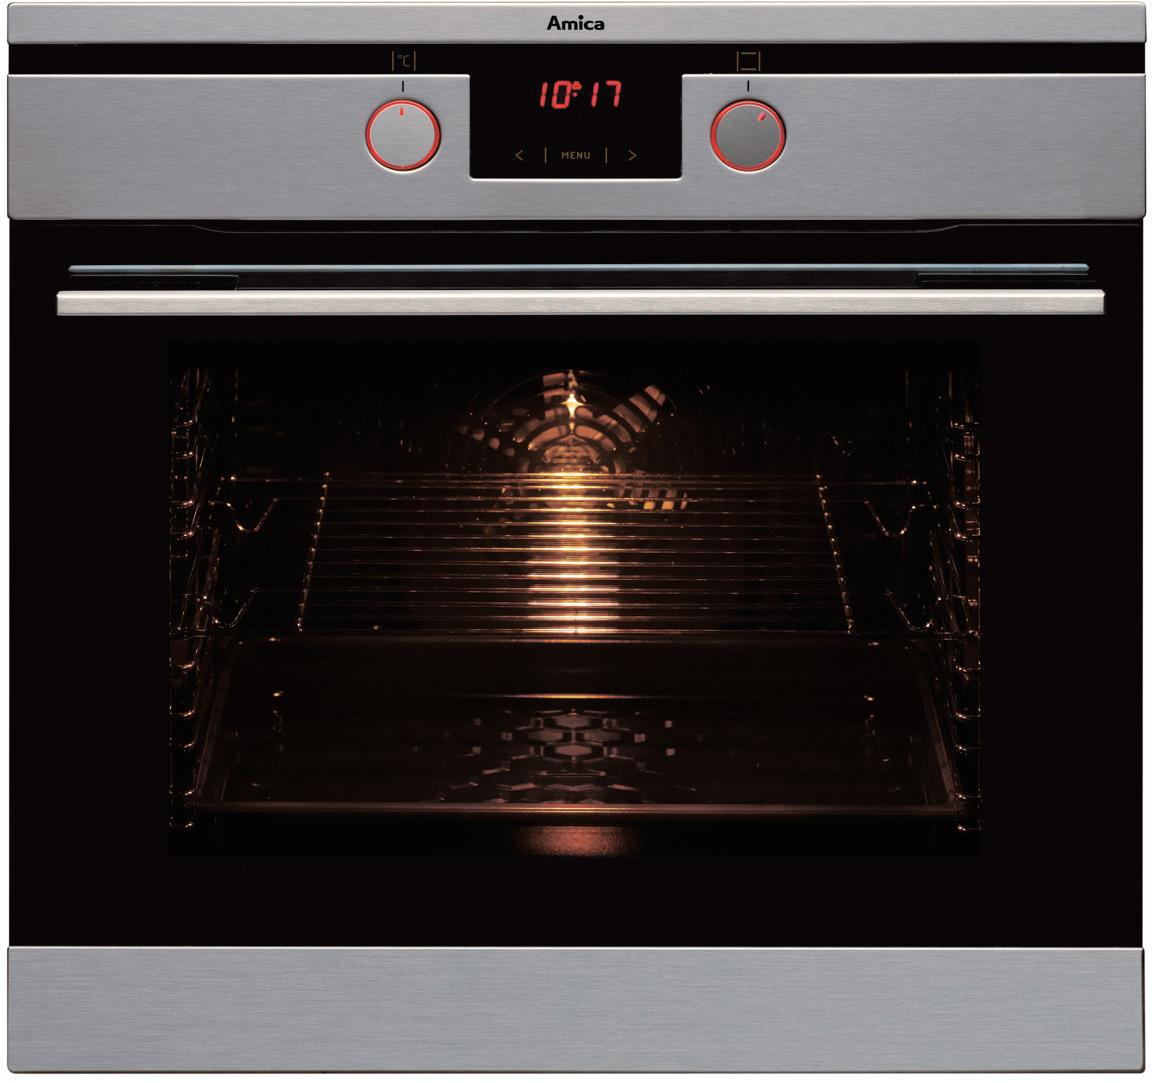 11433TSX1 Ten function electric multifunction oven, stainless steel Main